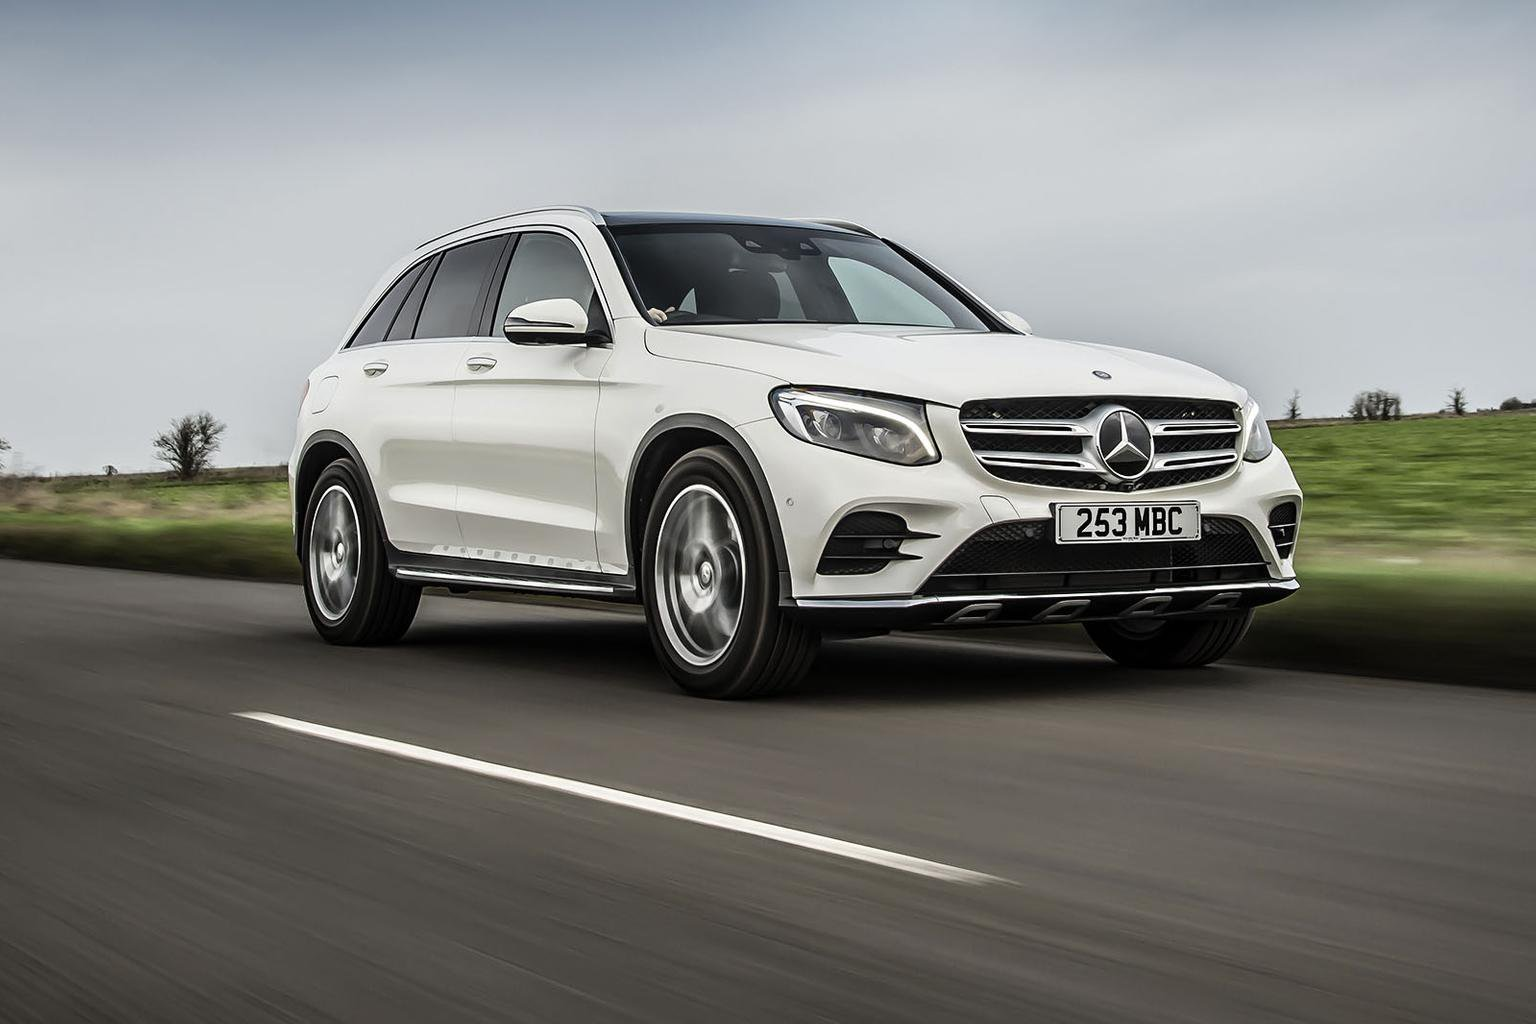 2016 Mercedes GLC 250d review